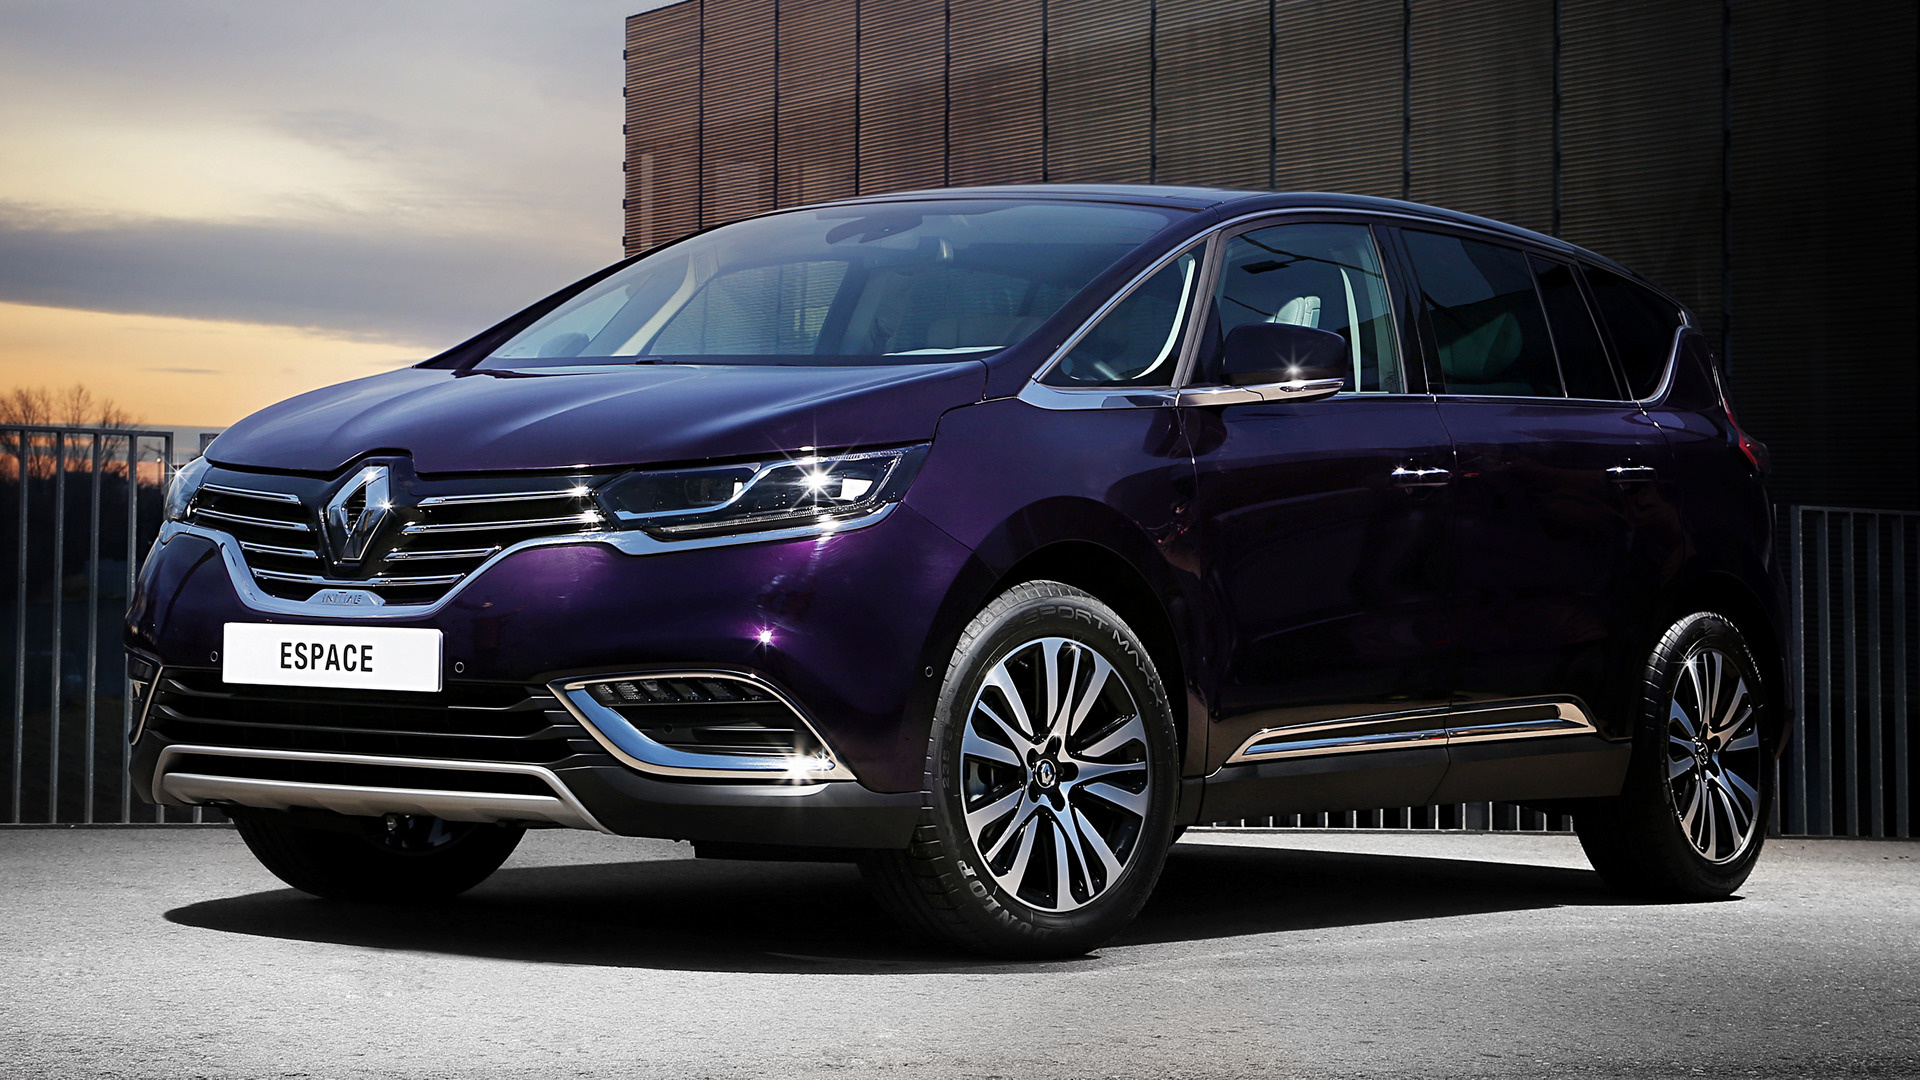 Dodge Ram 2015 >> 2015 Renault Espace Initiale Paris - Wallpapers and HD ...